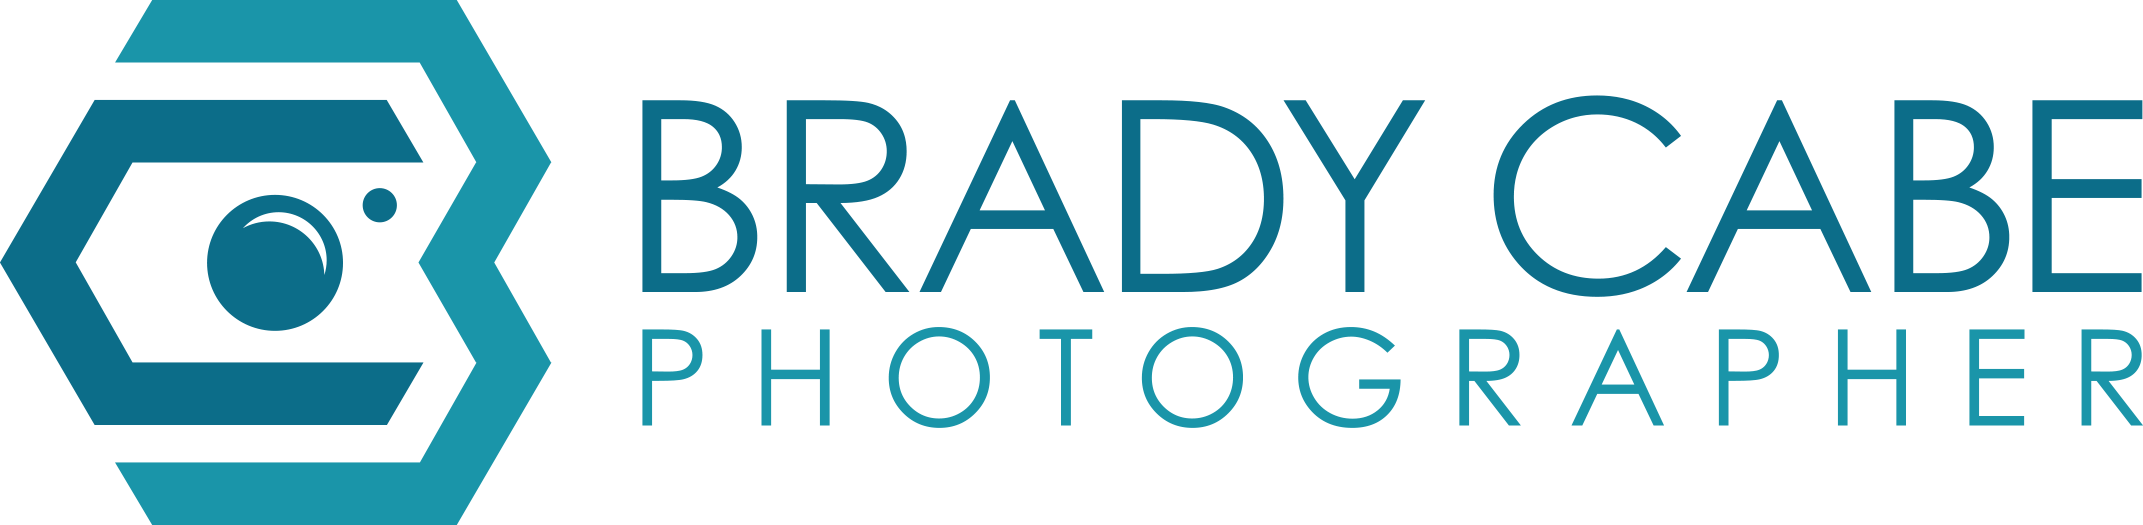 Brady Cabe Photographer Central California photography